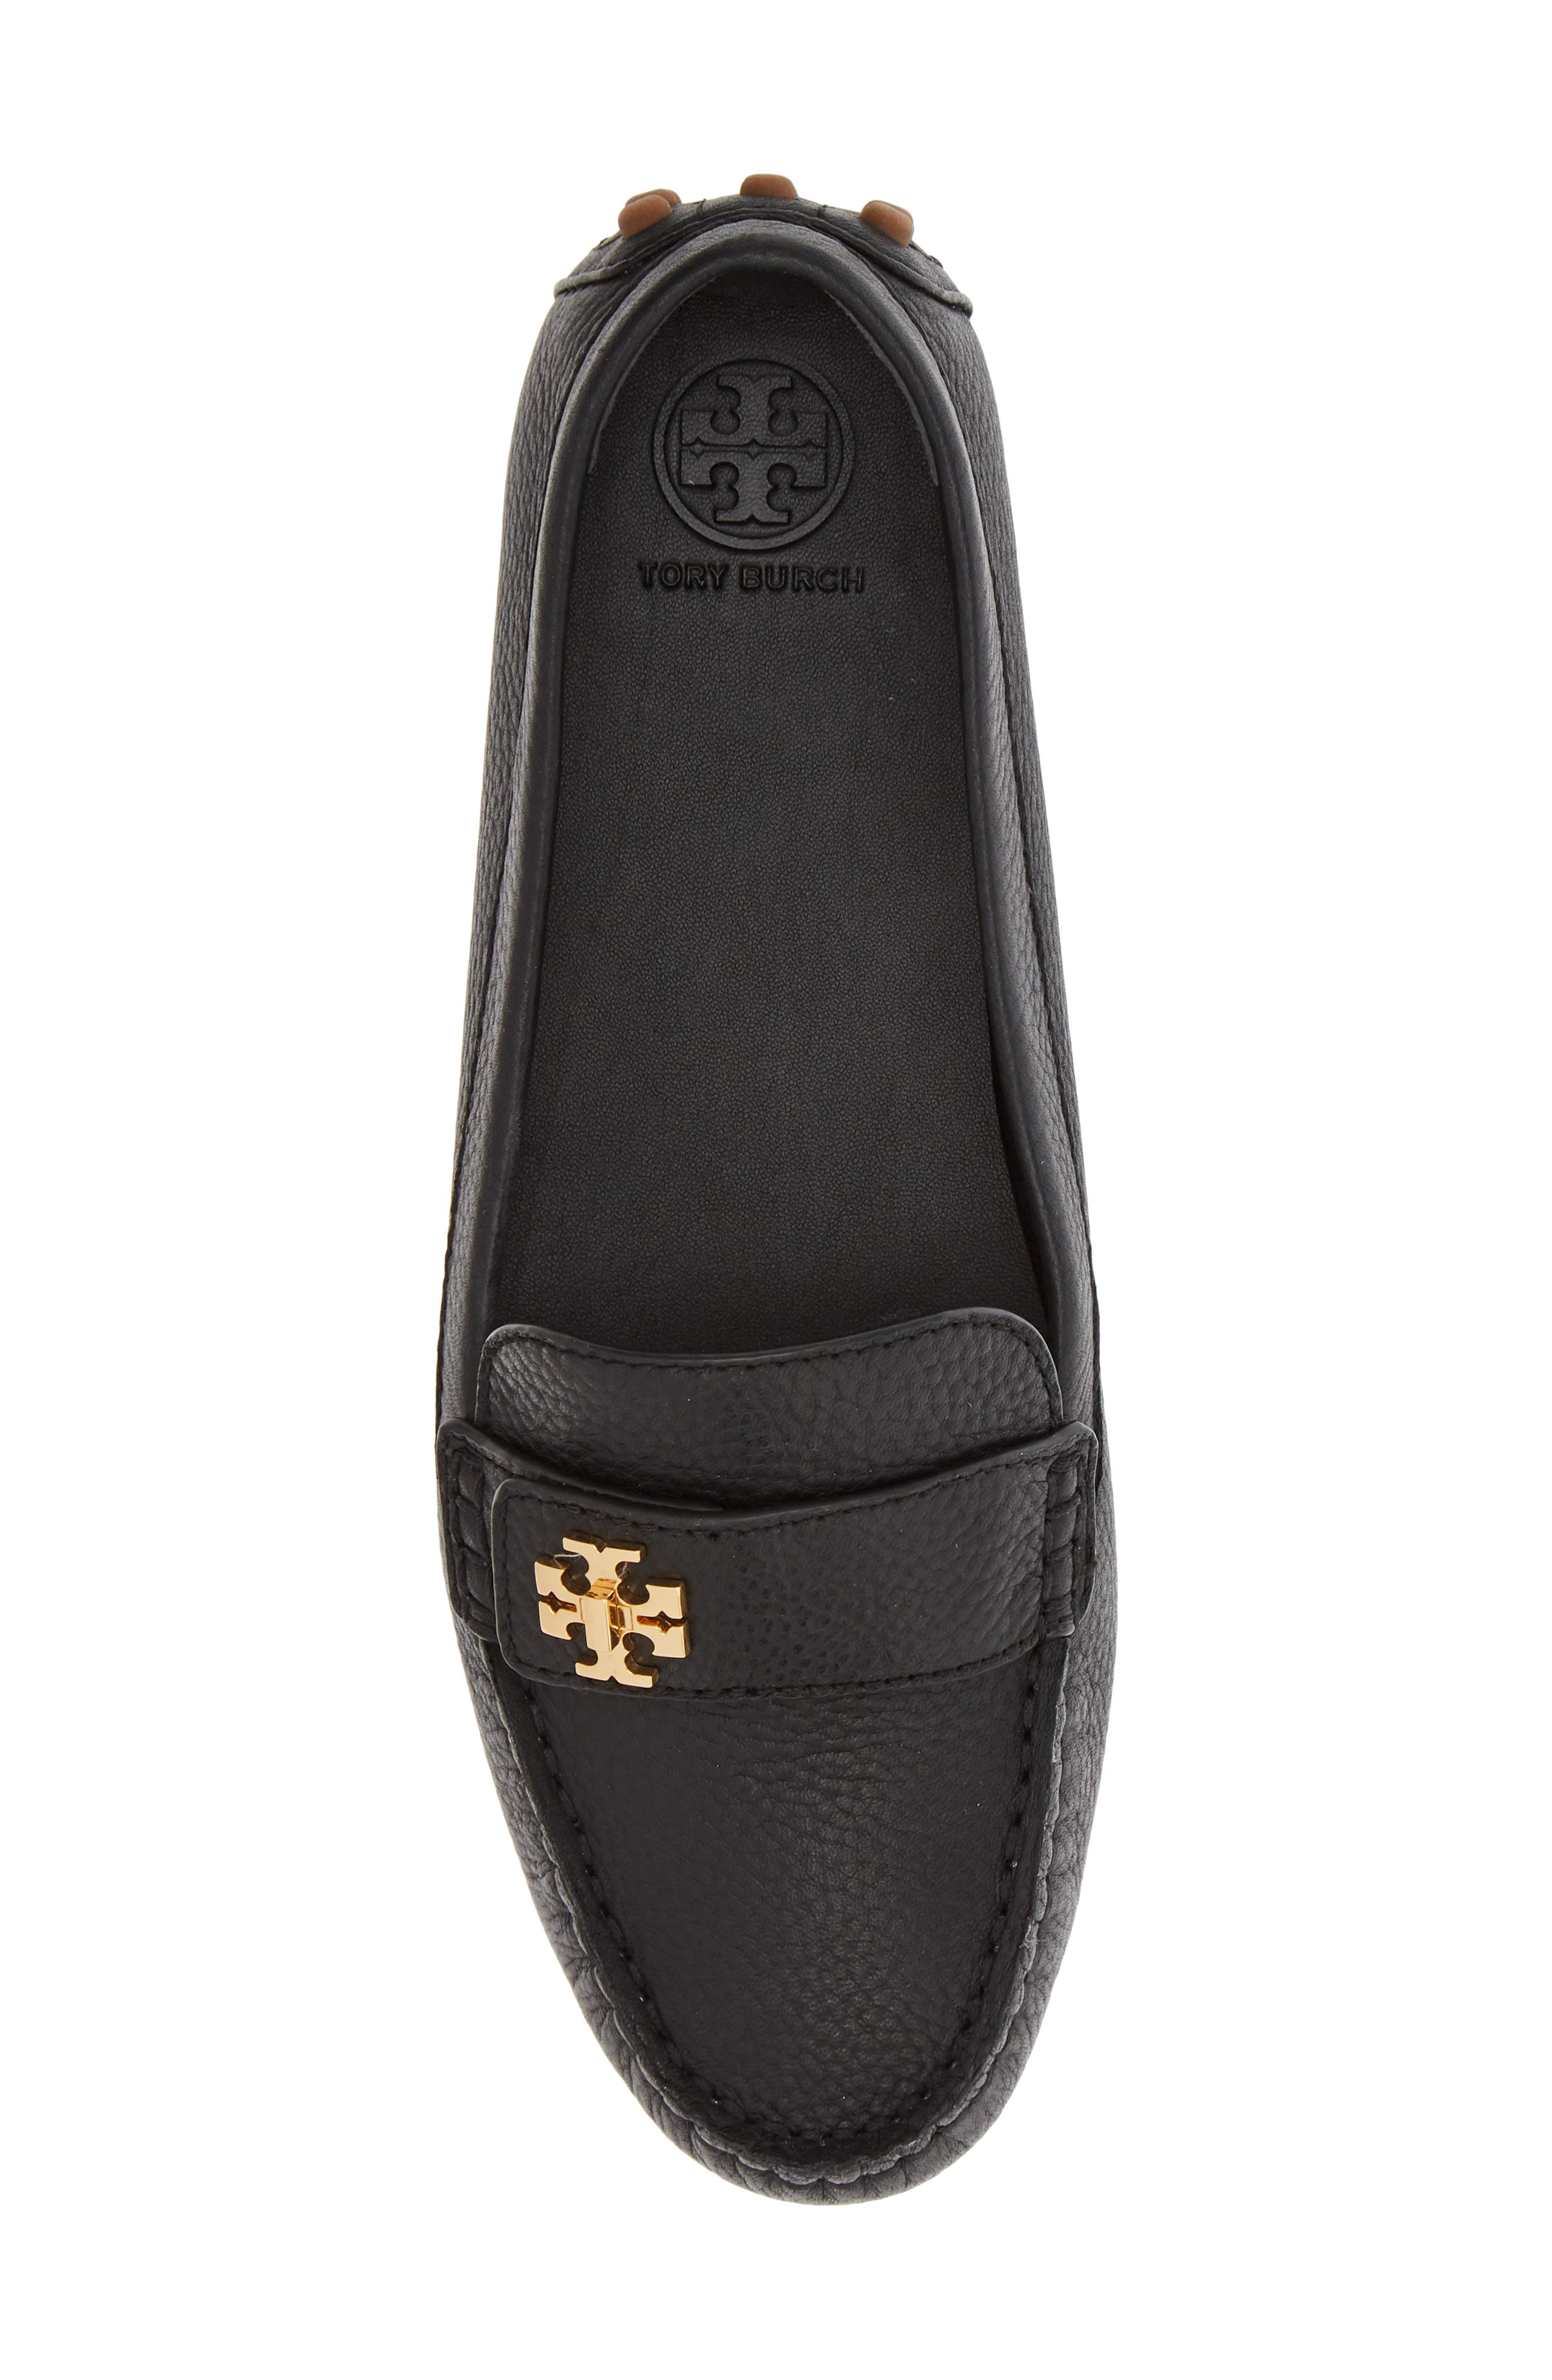 TORY BURCH, Kira Driving Loafer, Alternate thumbnail 5, color, PERFECT BLACK